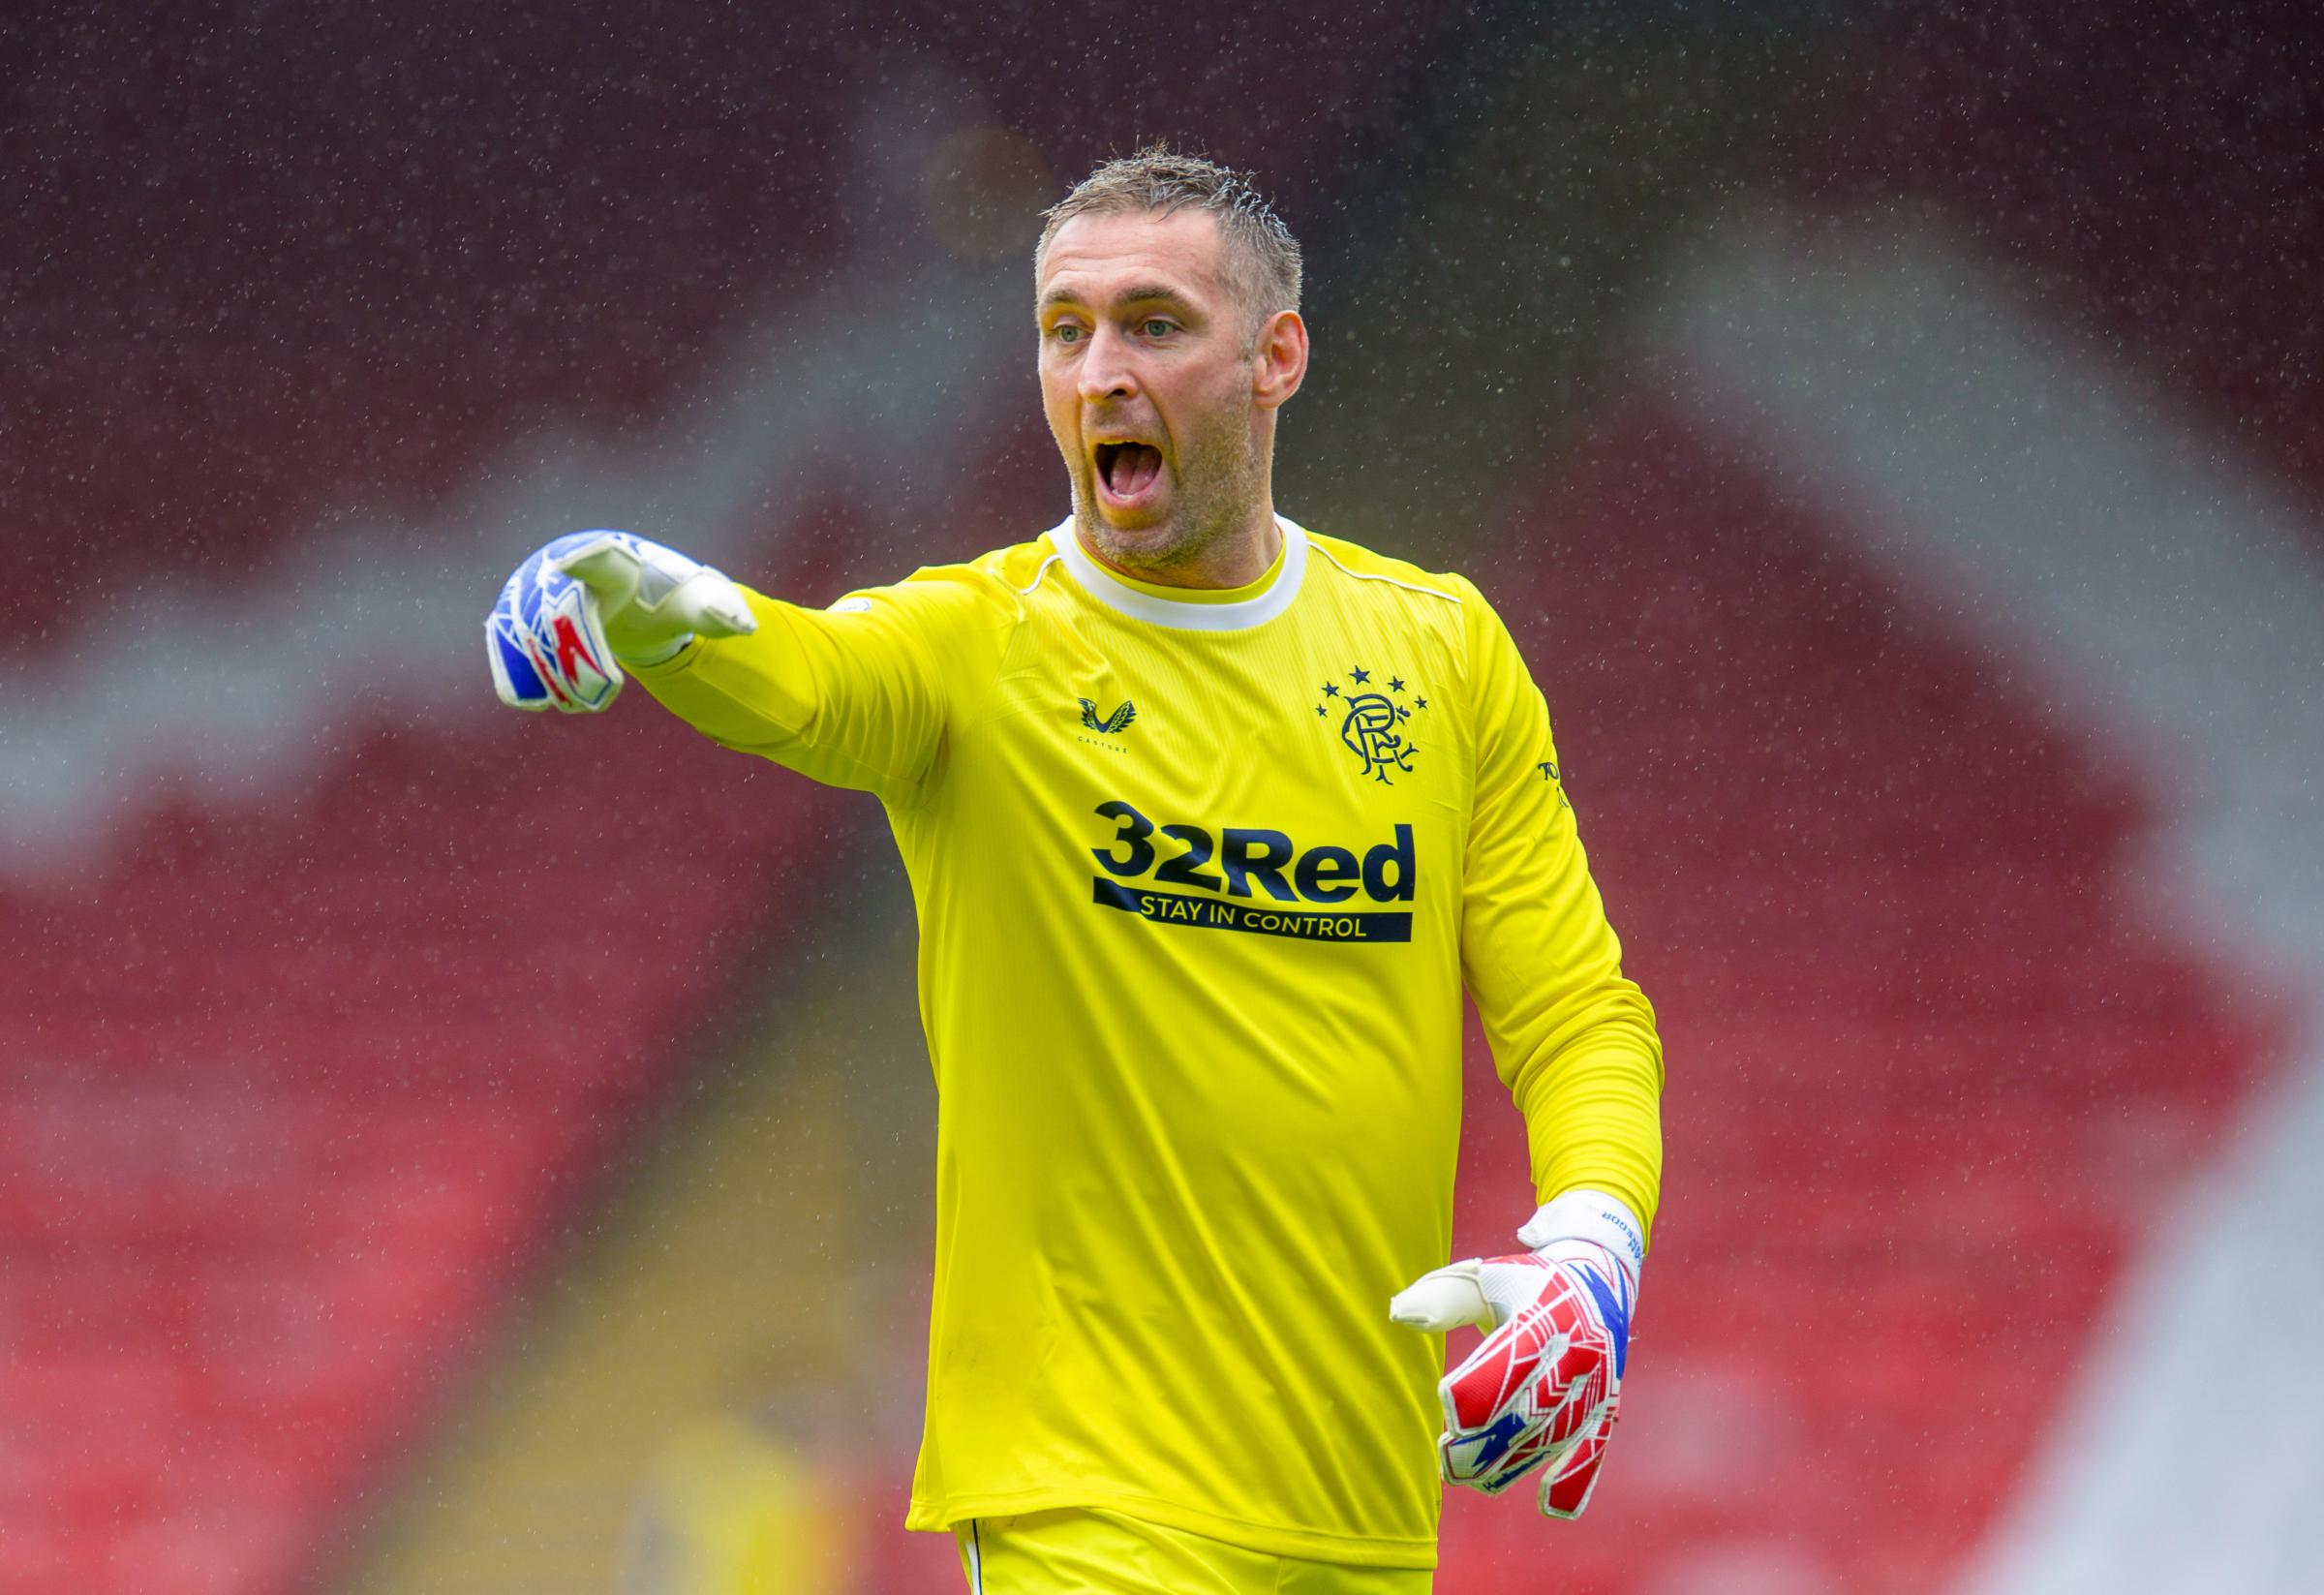 Happy days! Allan McGregor on the last-gasp wonder save that earned Rangers a draw against Slavia Prague